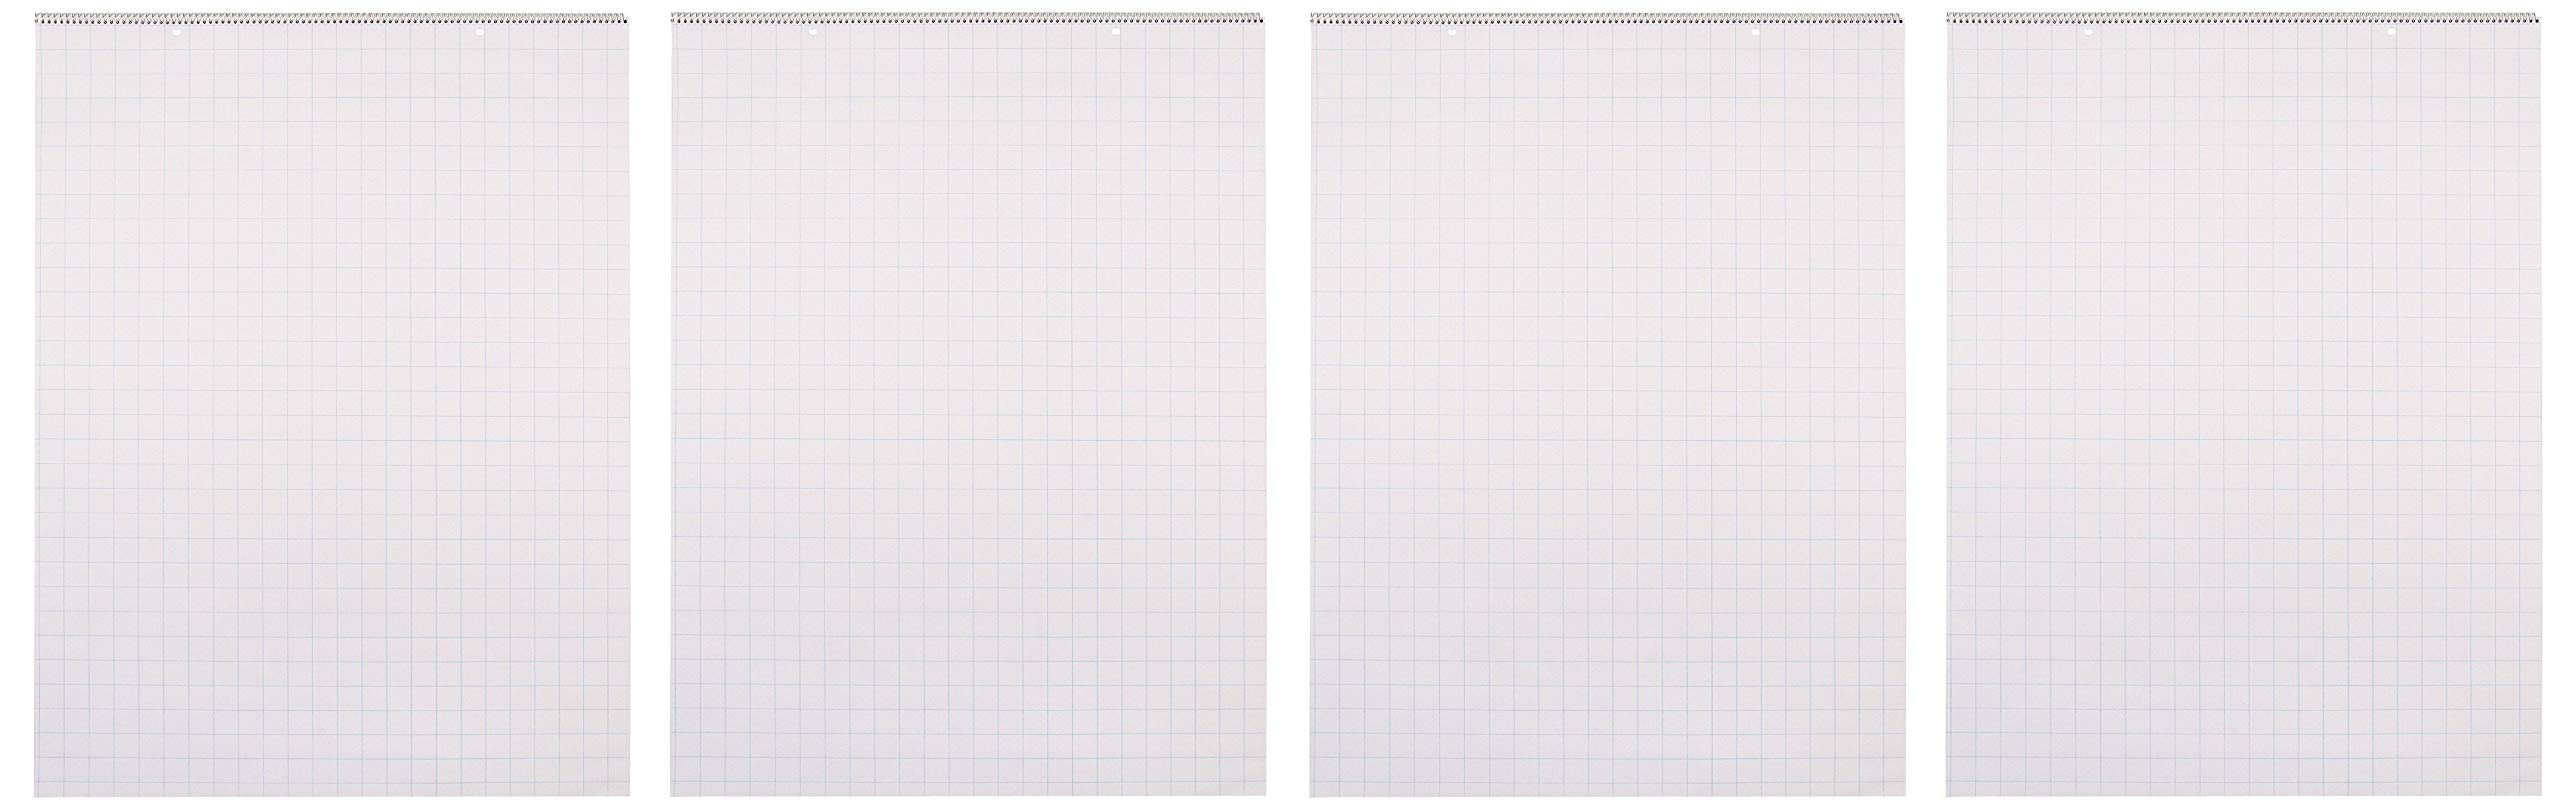 School Smart Chart Paper Pad, 24 x 32 Inches, 1 Inch Grids, 25 Sheets (Fоur Paсk) by School Smart (Image #1)